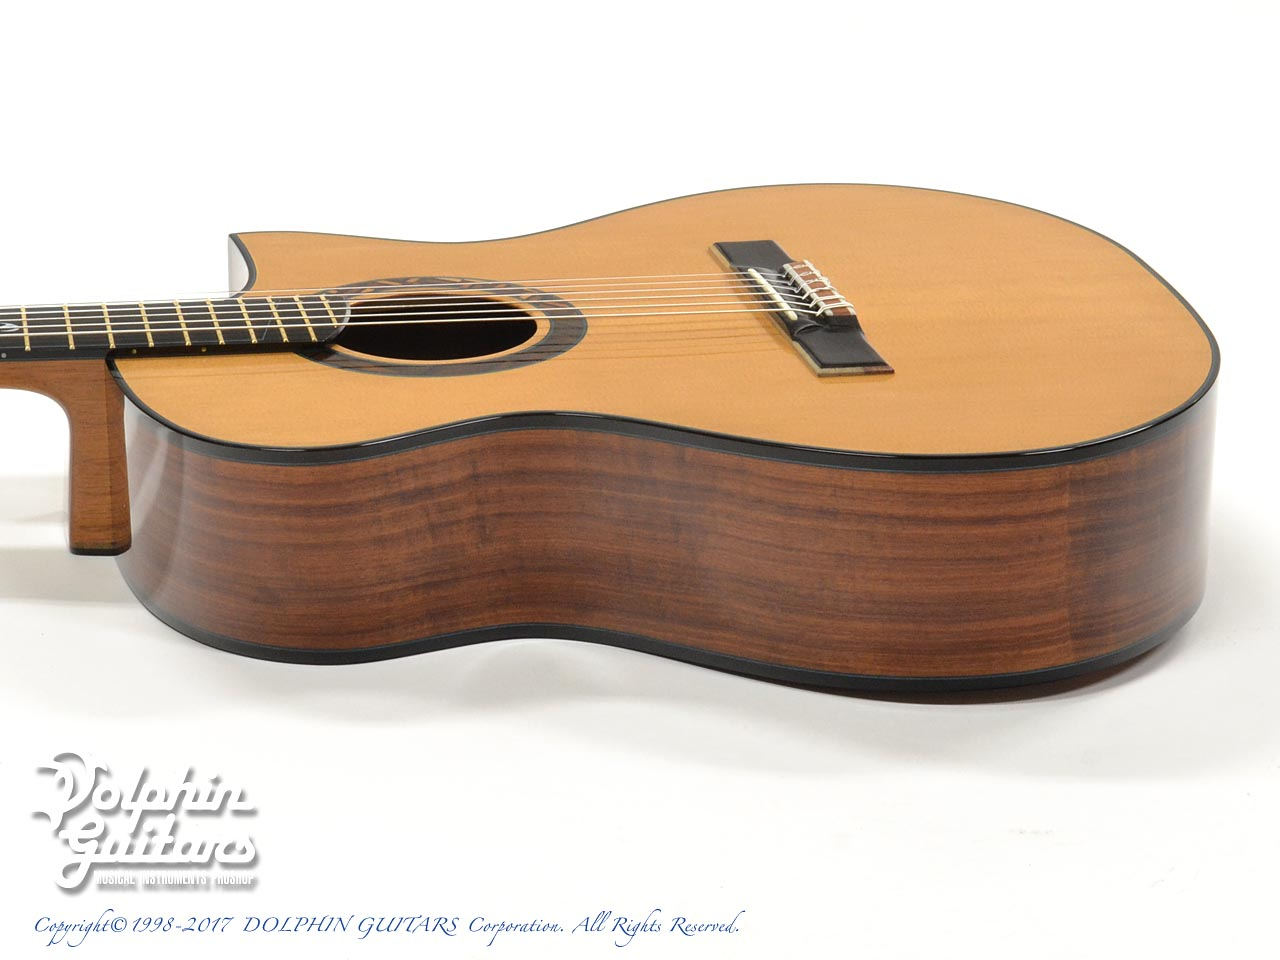 Luca Canteri Guitars: The Xover (2)